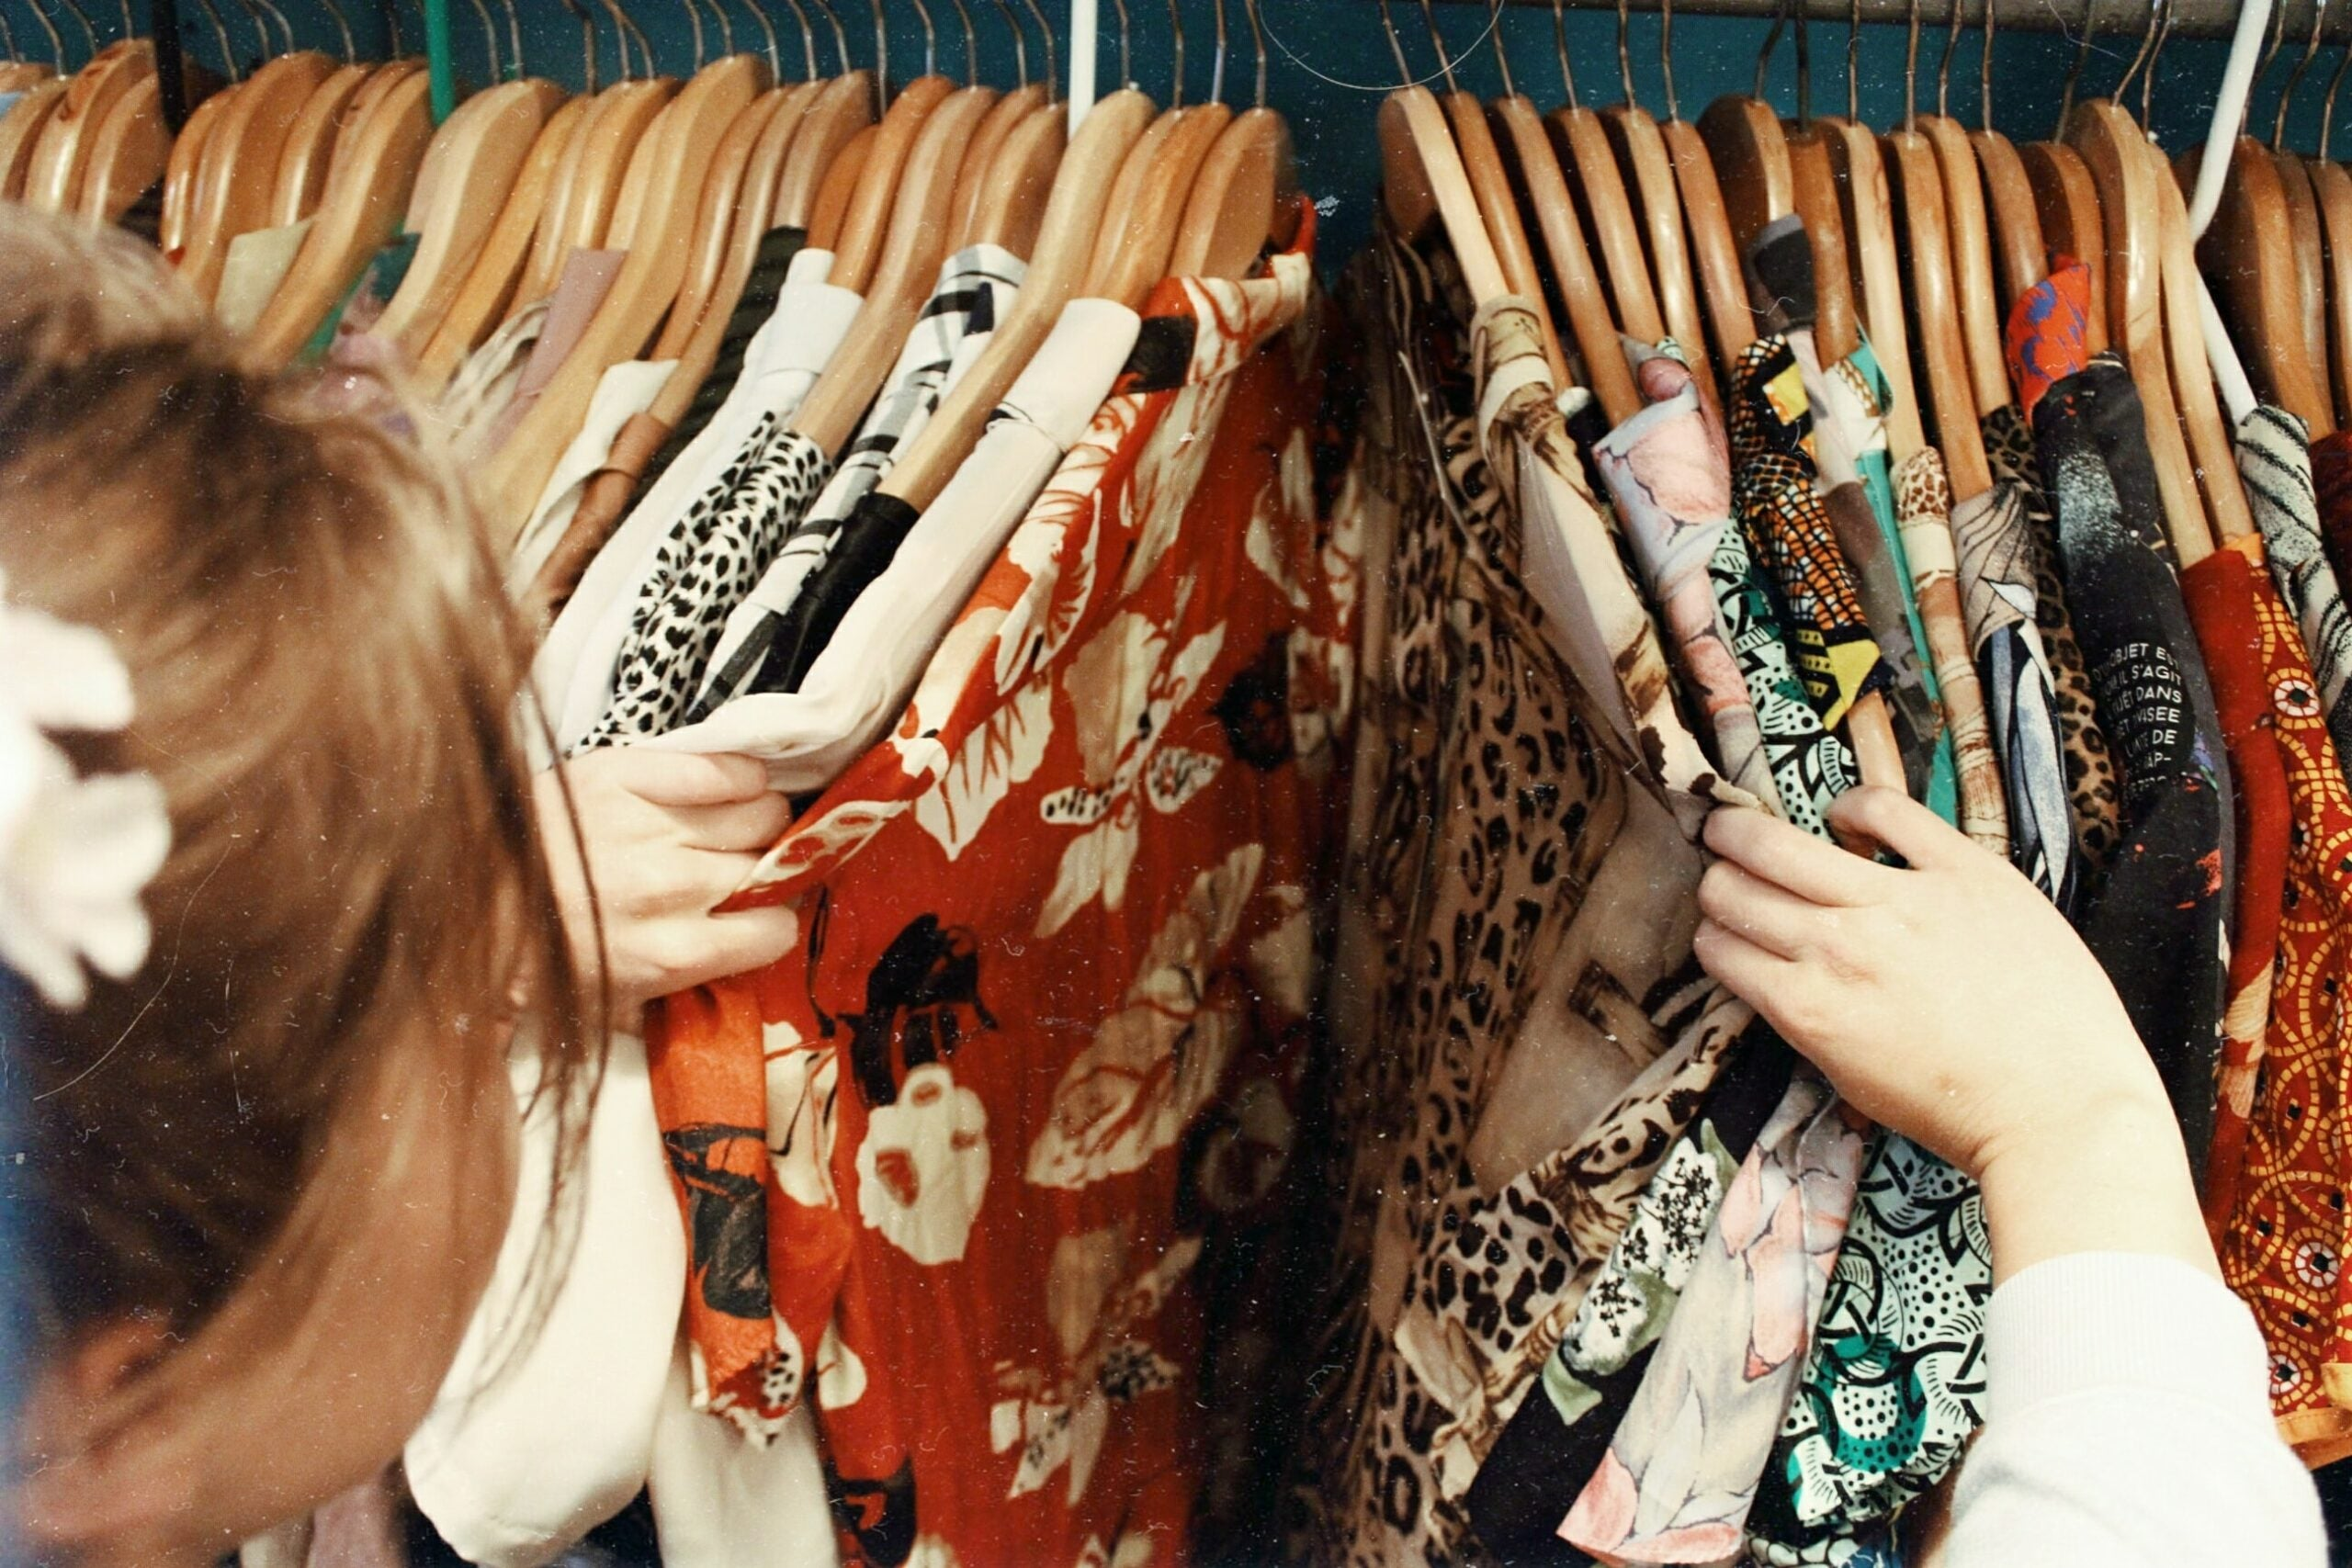 Woman searching through rack of vintage second-hand thrift clothing.